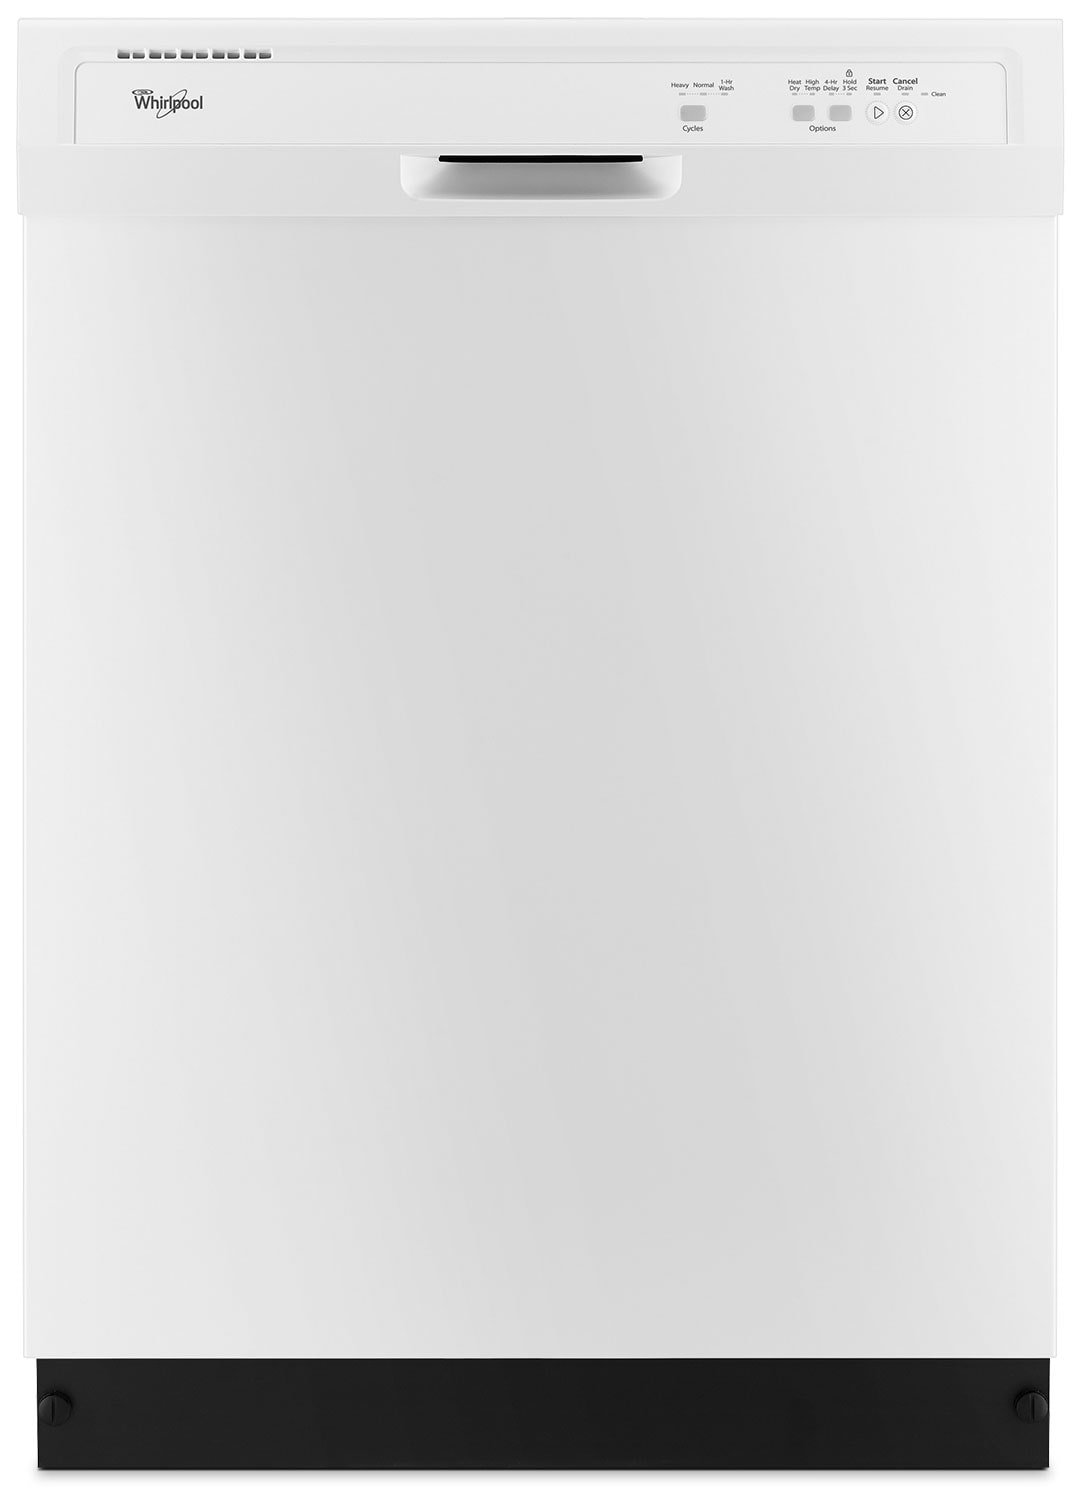 Clean-Up - Whirlpool® Built-In Dishwasher – White